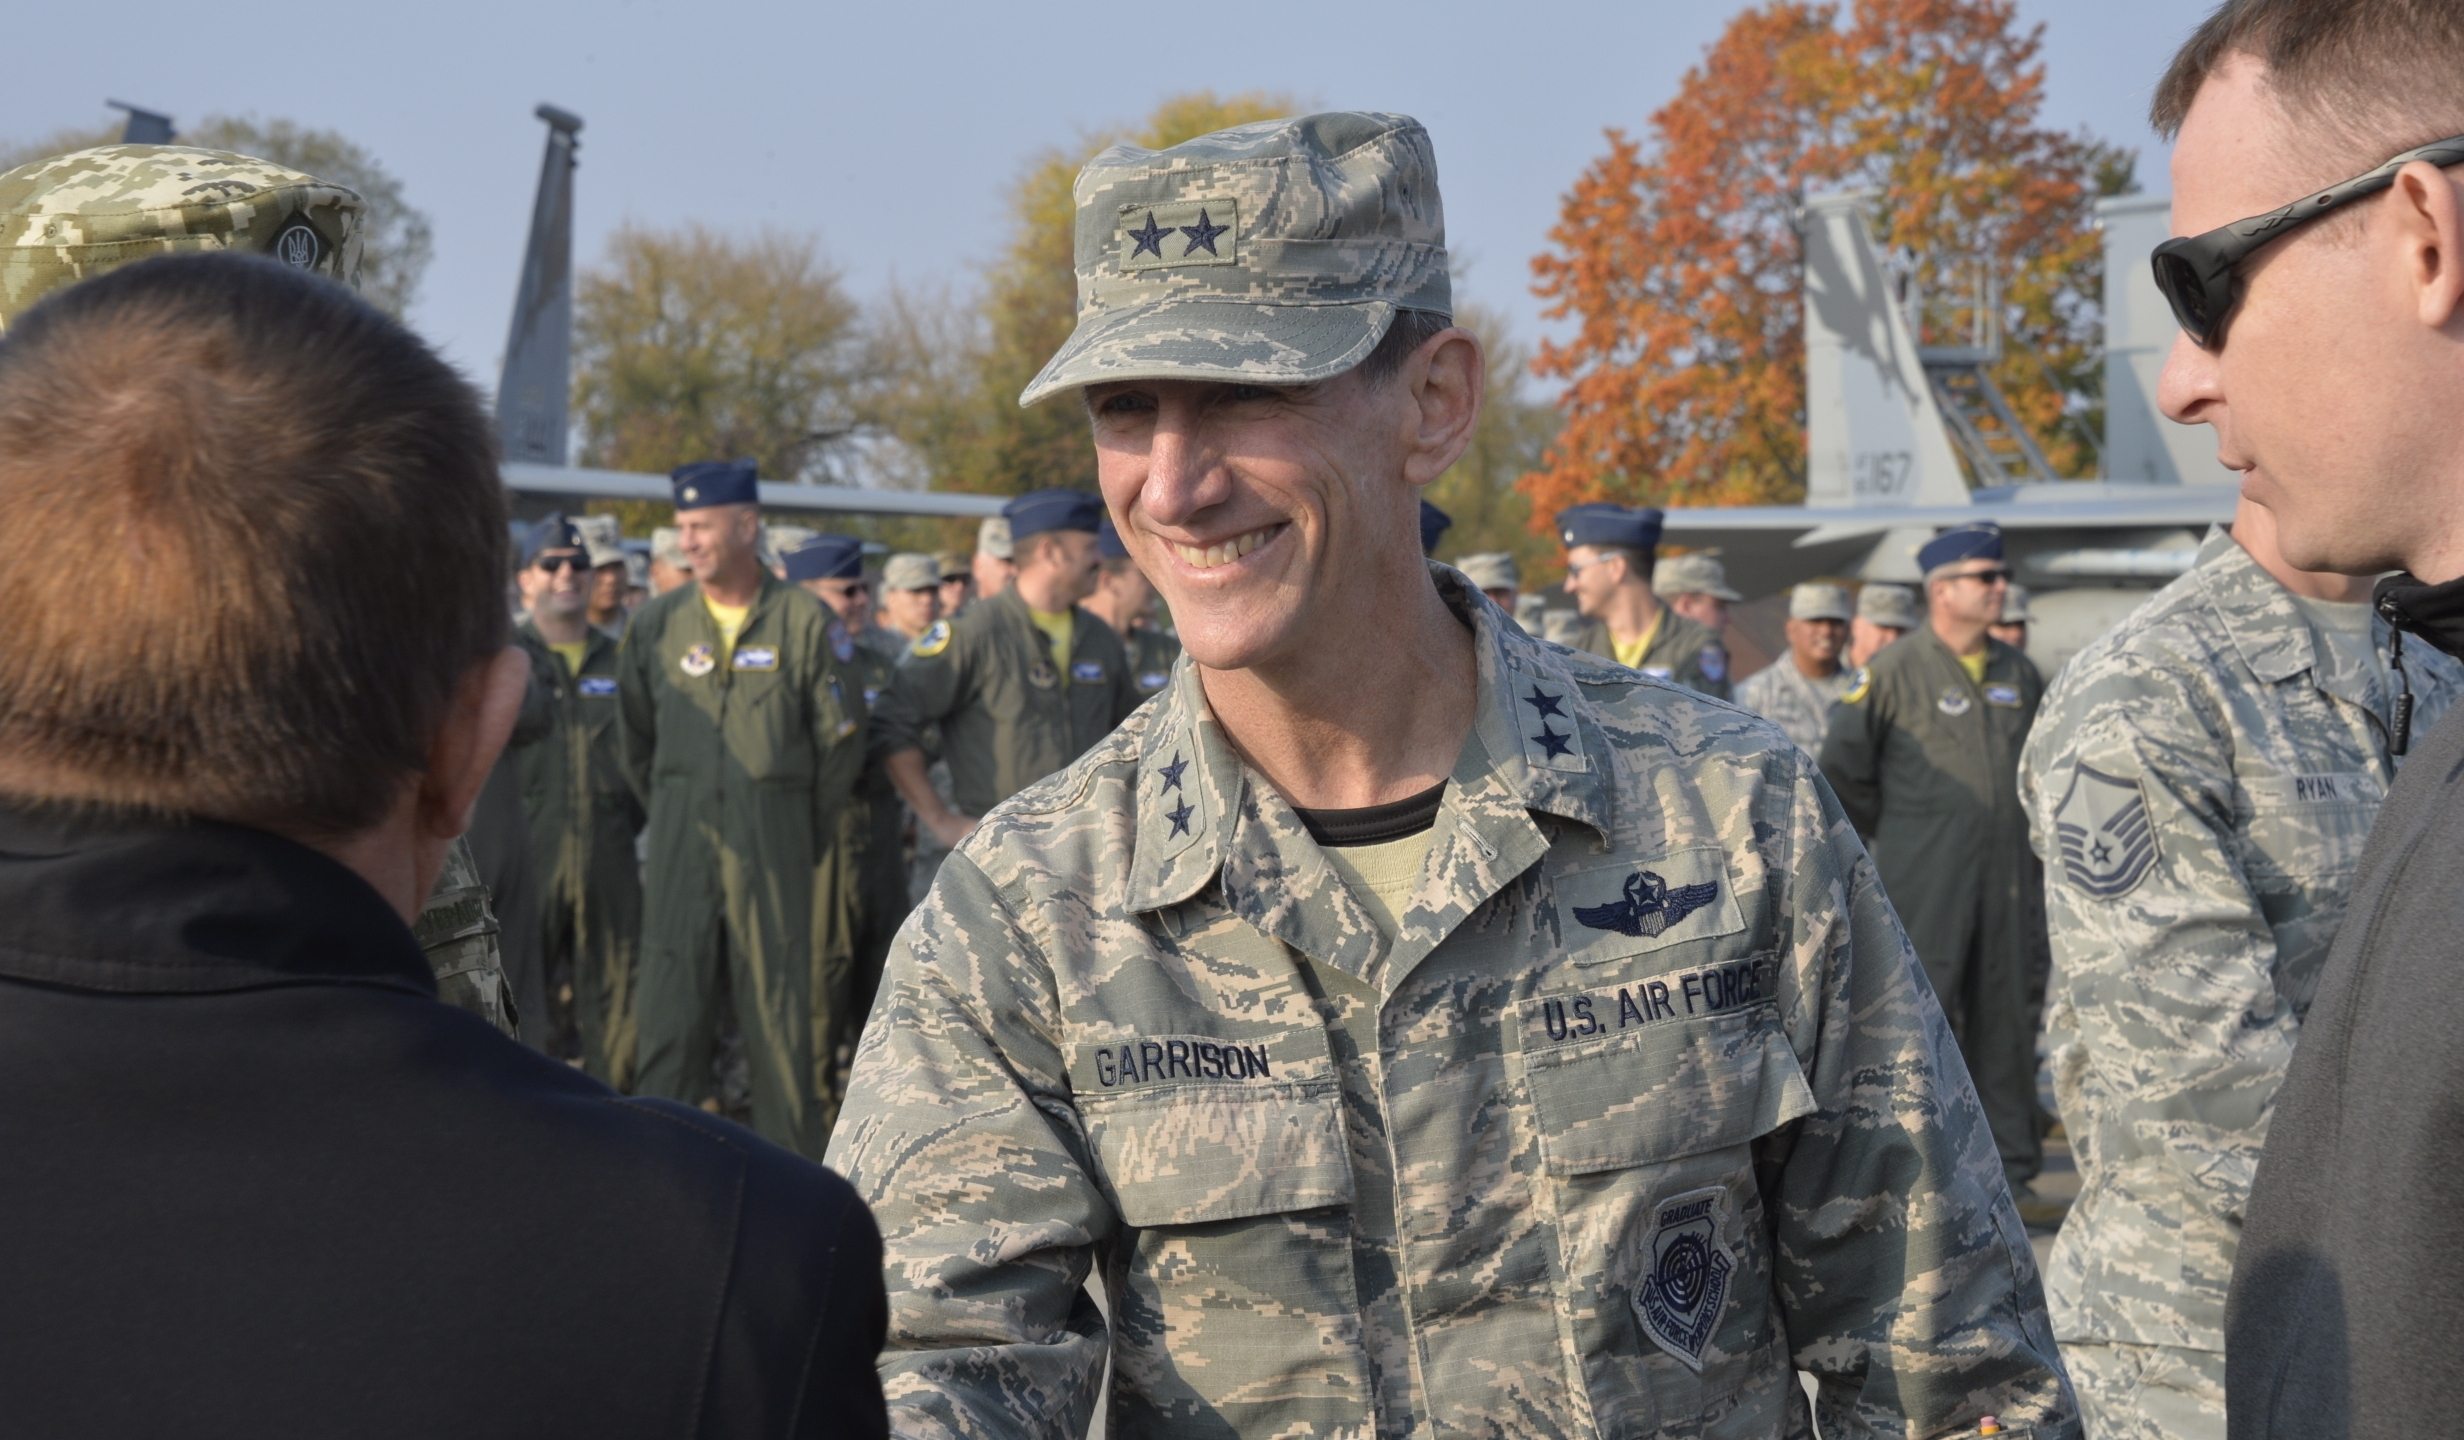 Maj. Gen. Clay L. Garrison, California Air National Guard commander, is seen during a ceremony at Starokostiantyniv Air Base, Ukraine, Oct. 8, 2018. (Credit: U.S. Air National Guard / Tech. Sgt. Charles Vaughn)